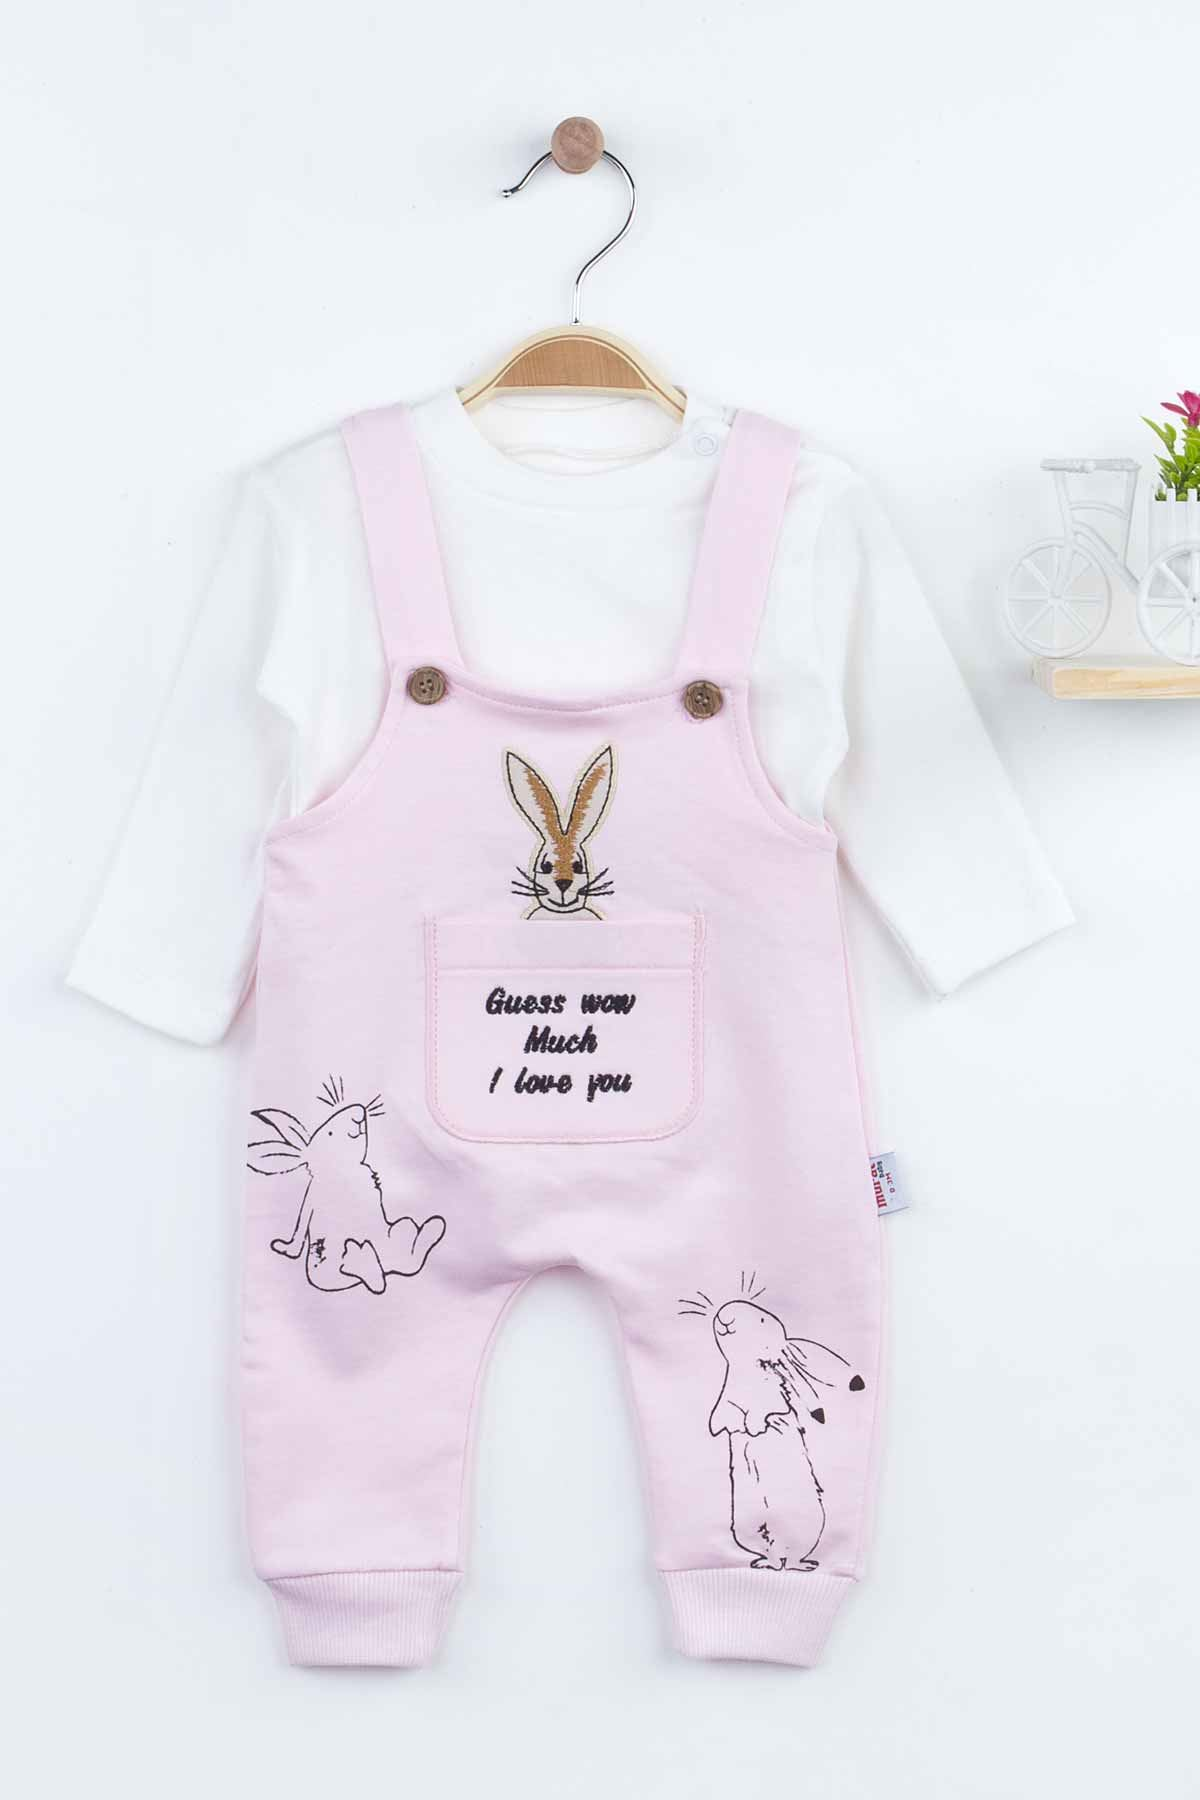 Pink Rabbit Baby Girl Rompers Babies Clothes Set Outfit Cotton Comfortable Underwear 2021 New Season Girls Salopet Rabbit Model